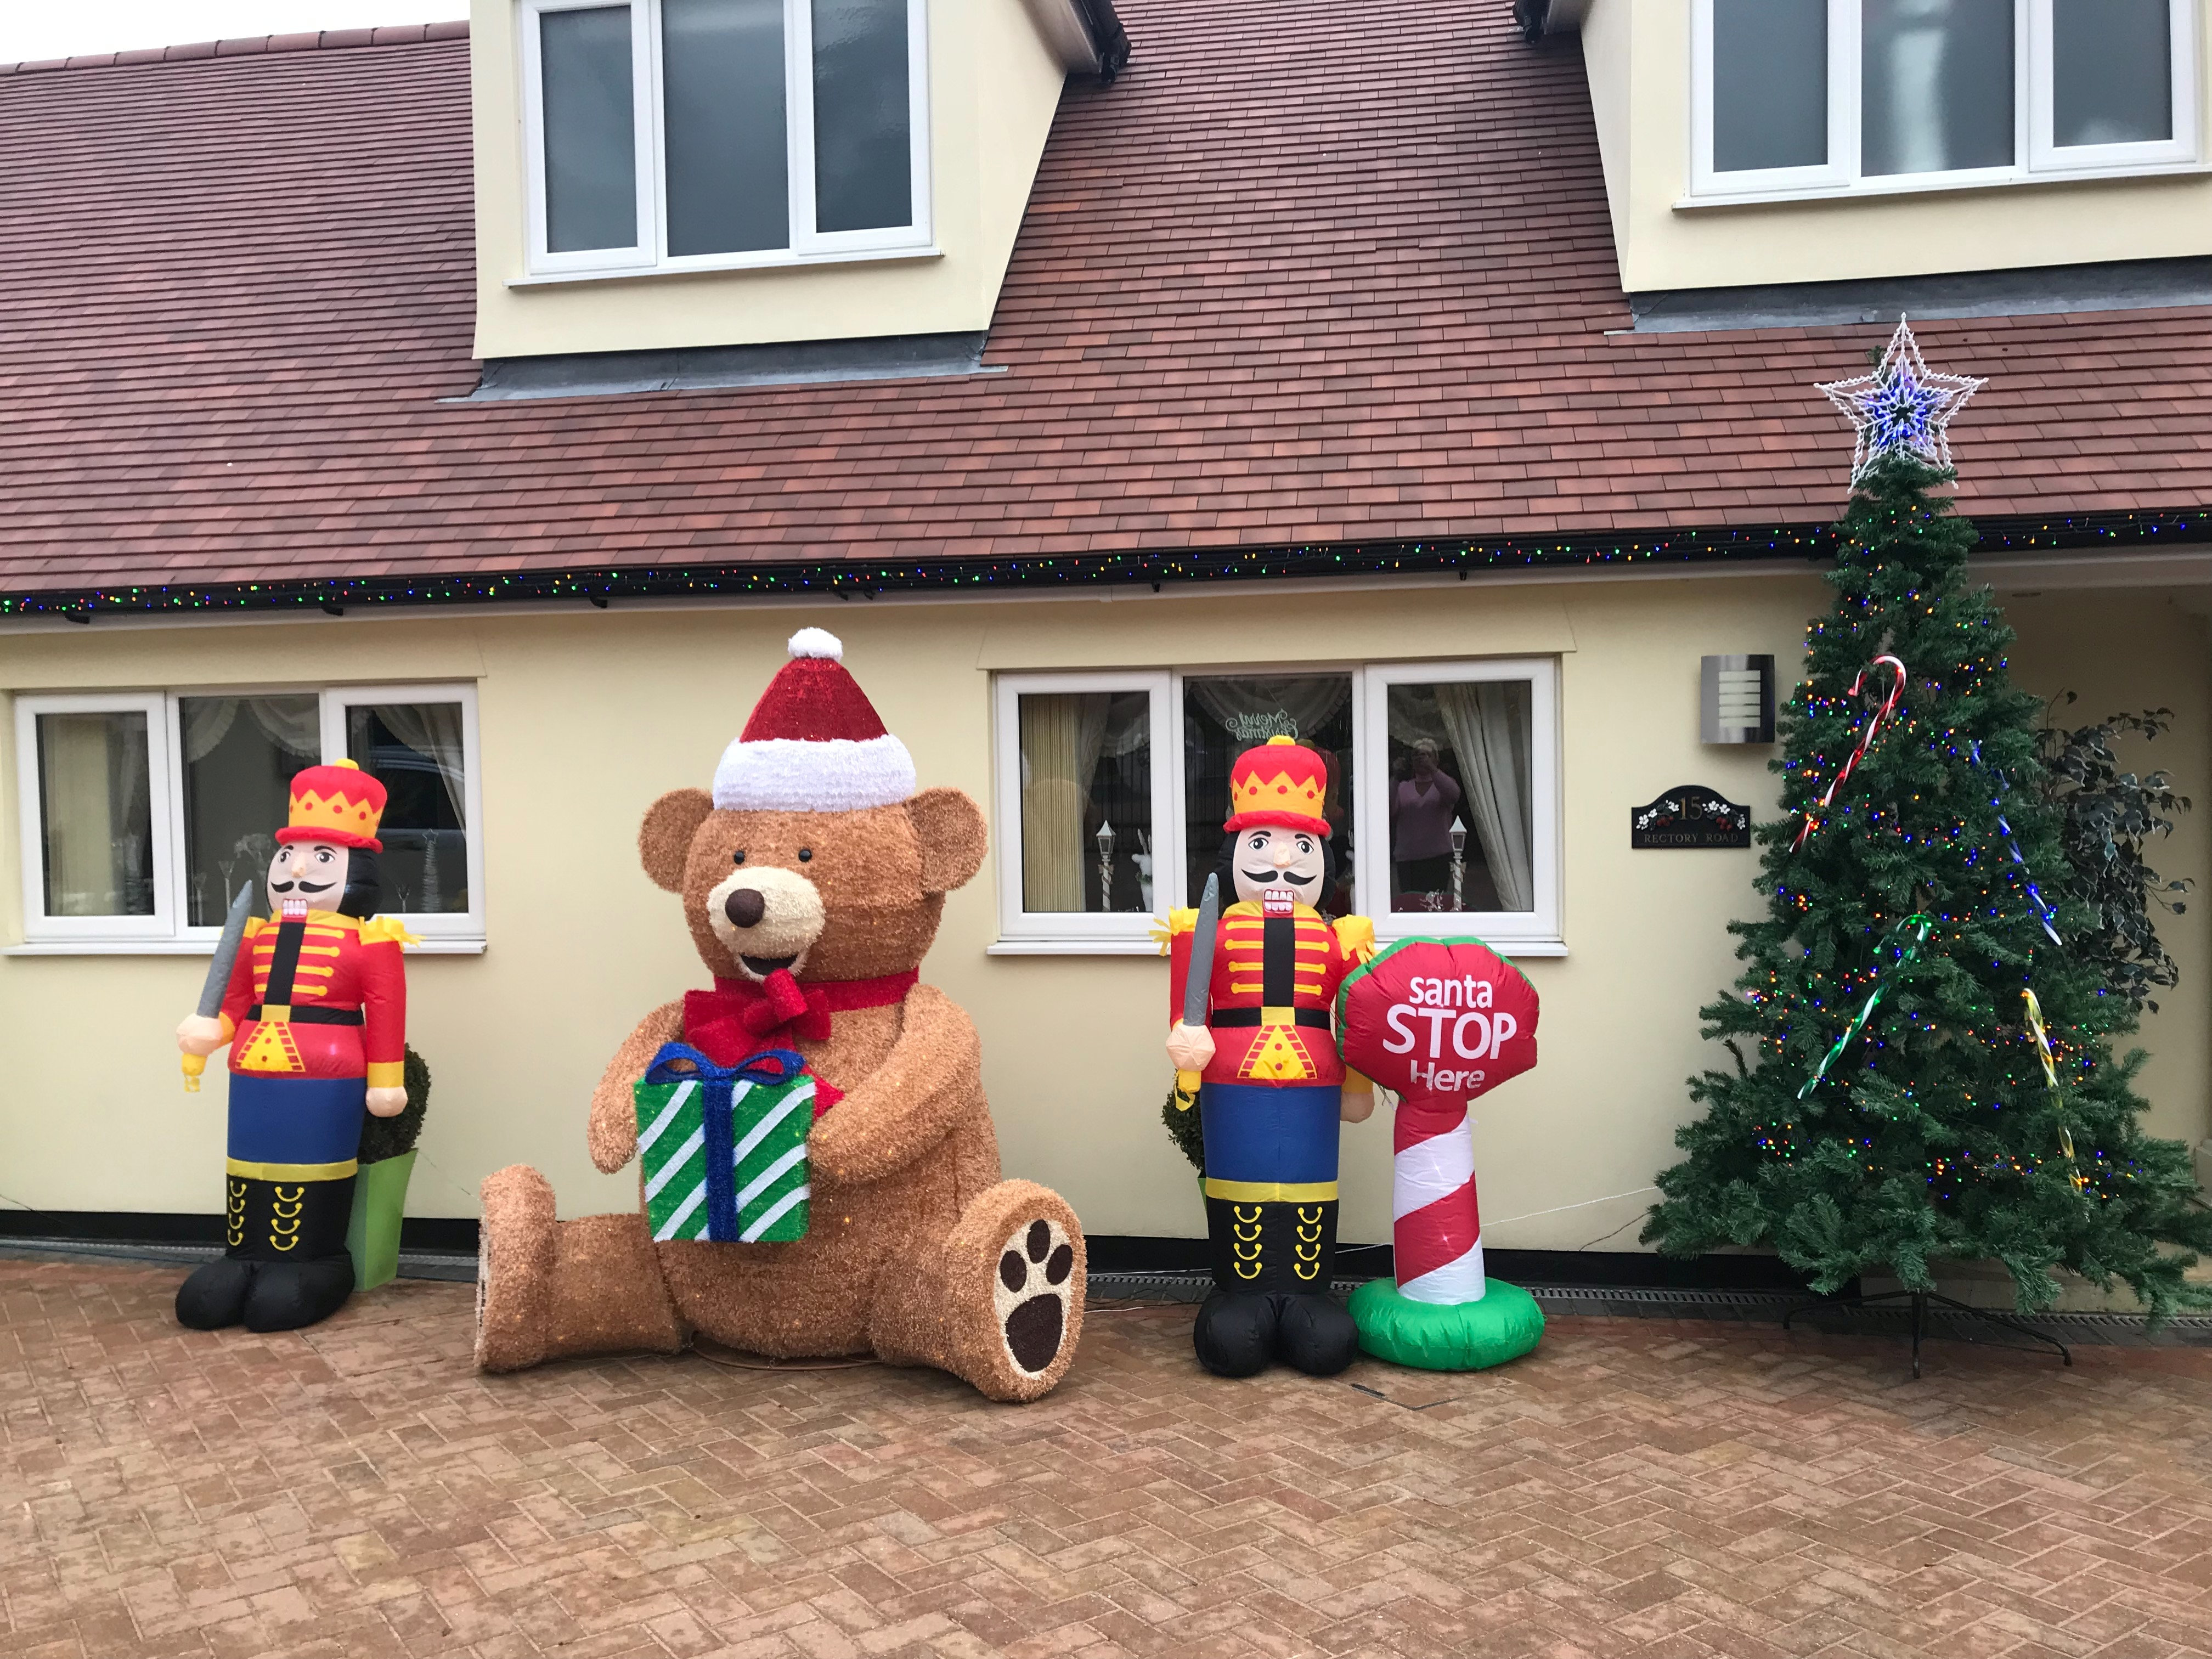 The outside of her home is as festive as the inside. Credit: SWNS